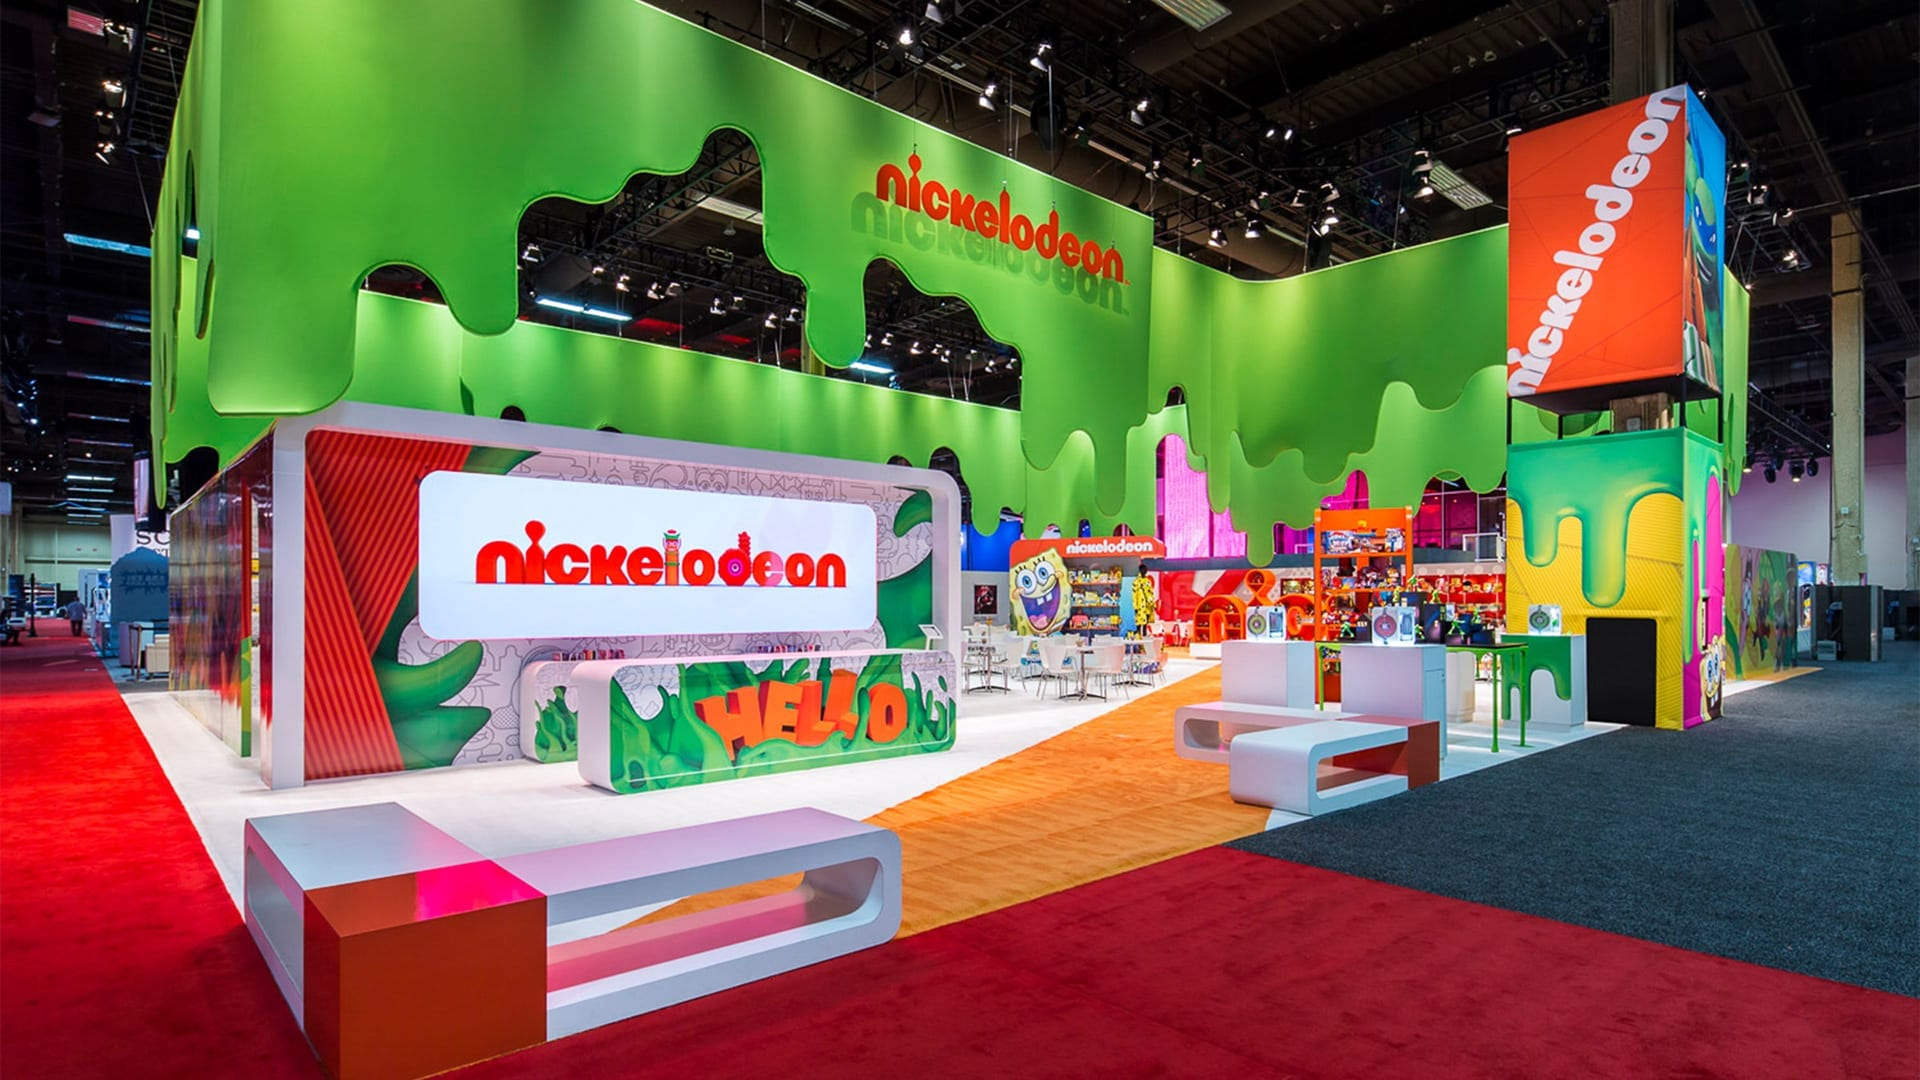 5 Coolest Trade Show Booths (and how to boost your booth's appeal!)